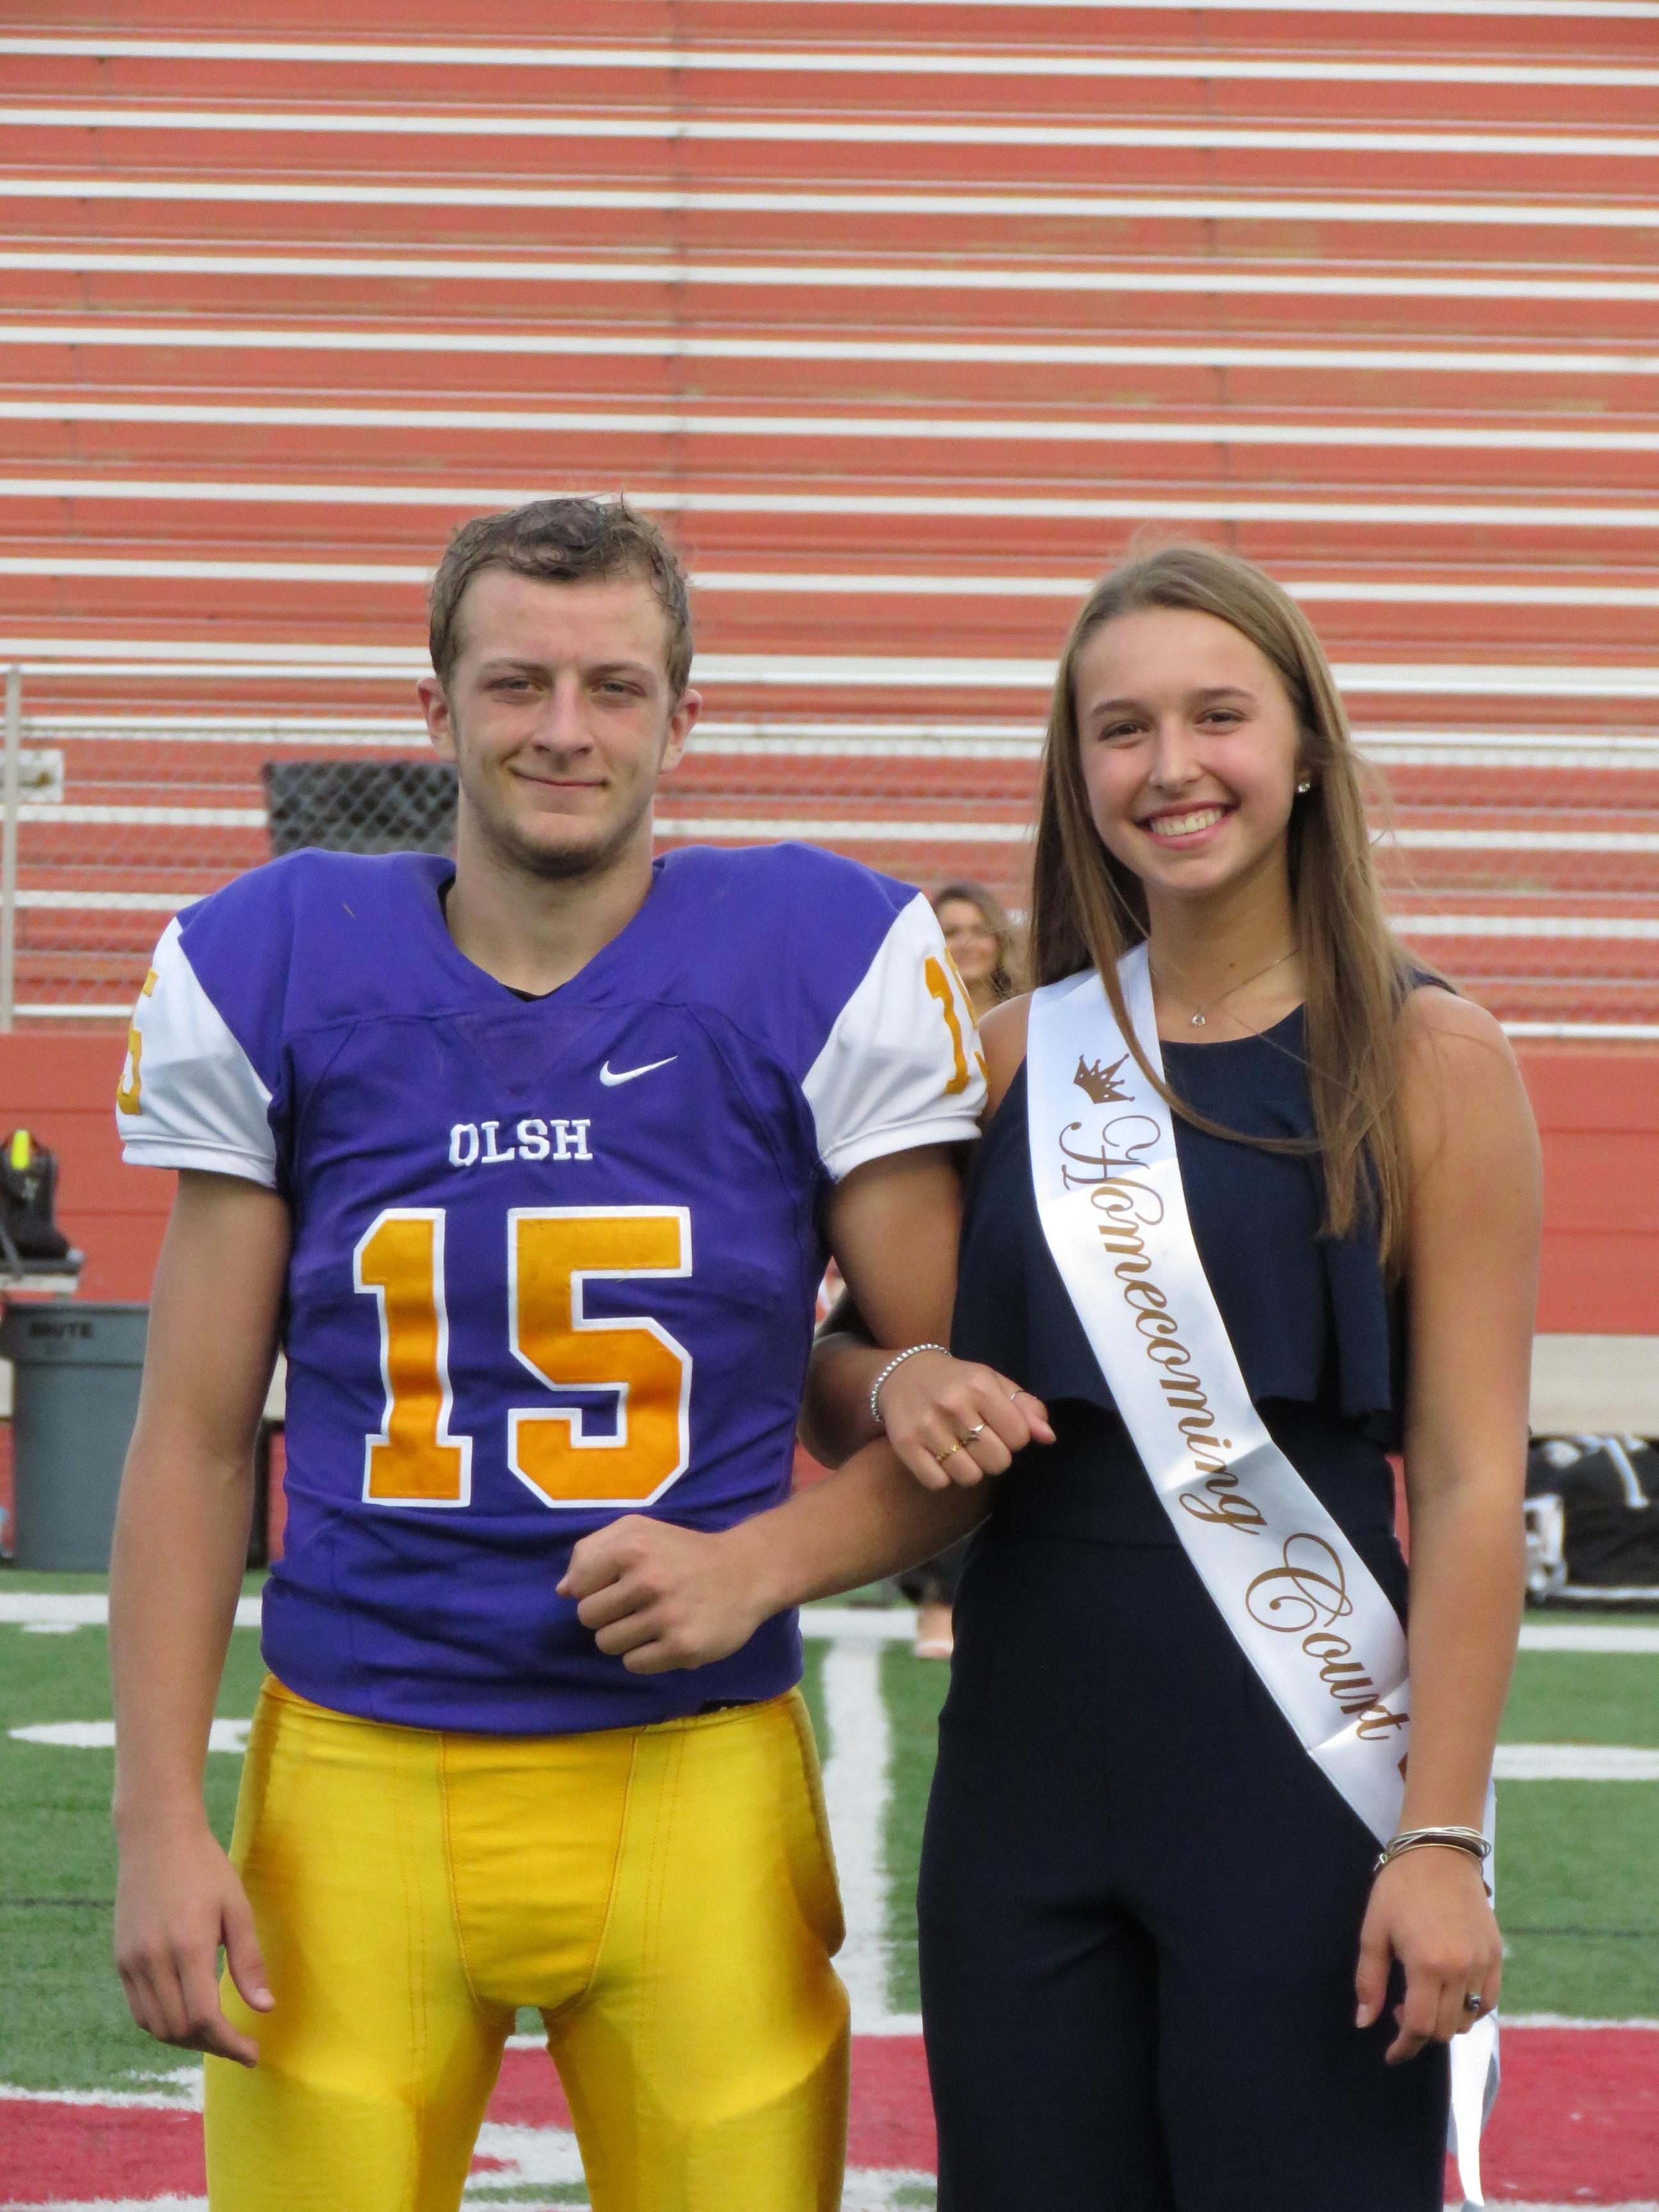 Luke was on the 2018 homecoming court and escorted fellow senior Lucy on the field.